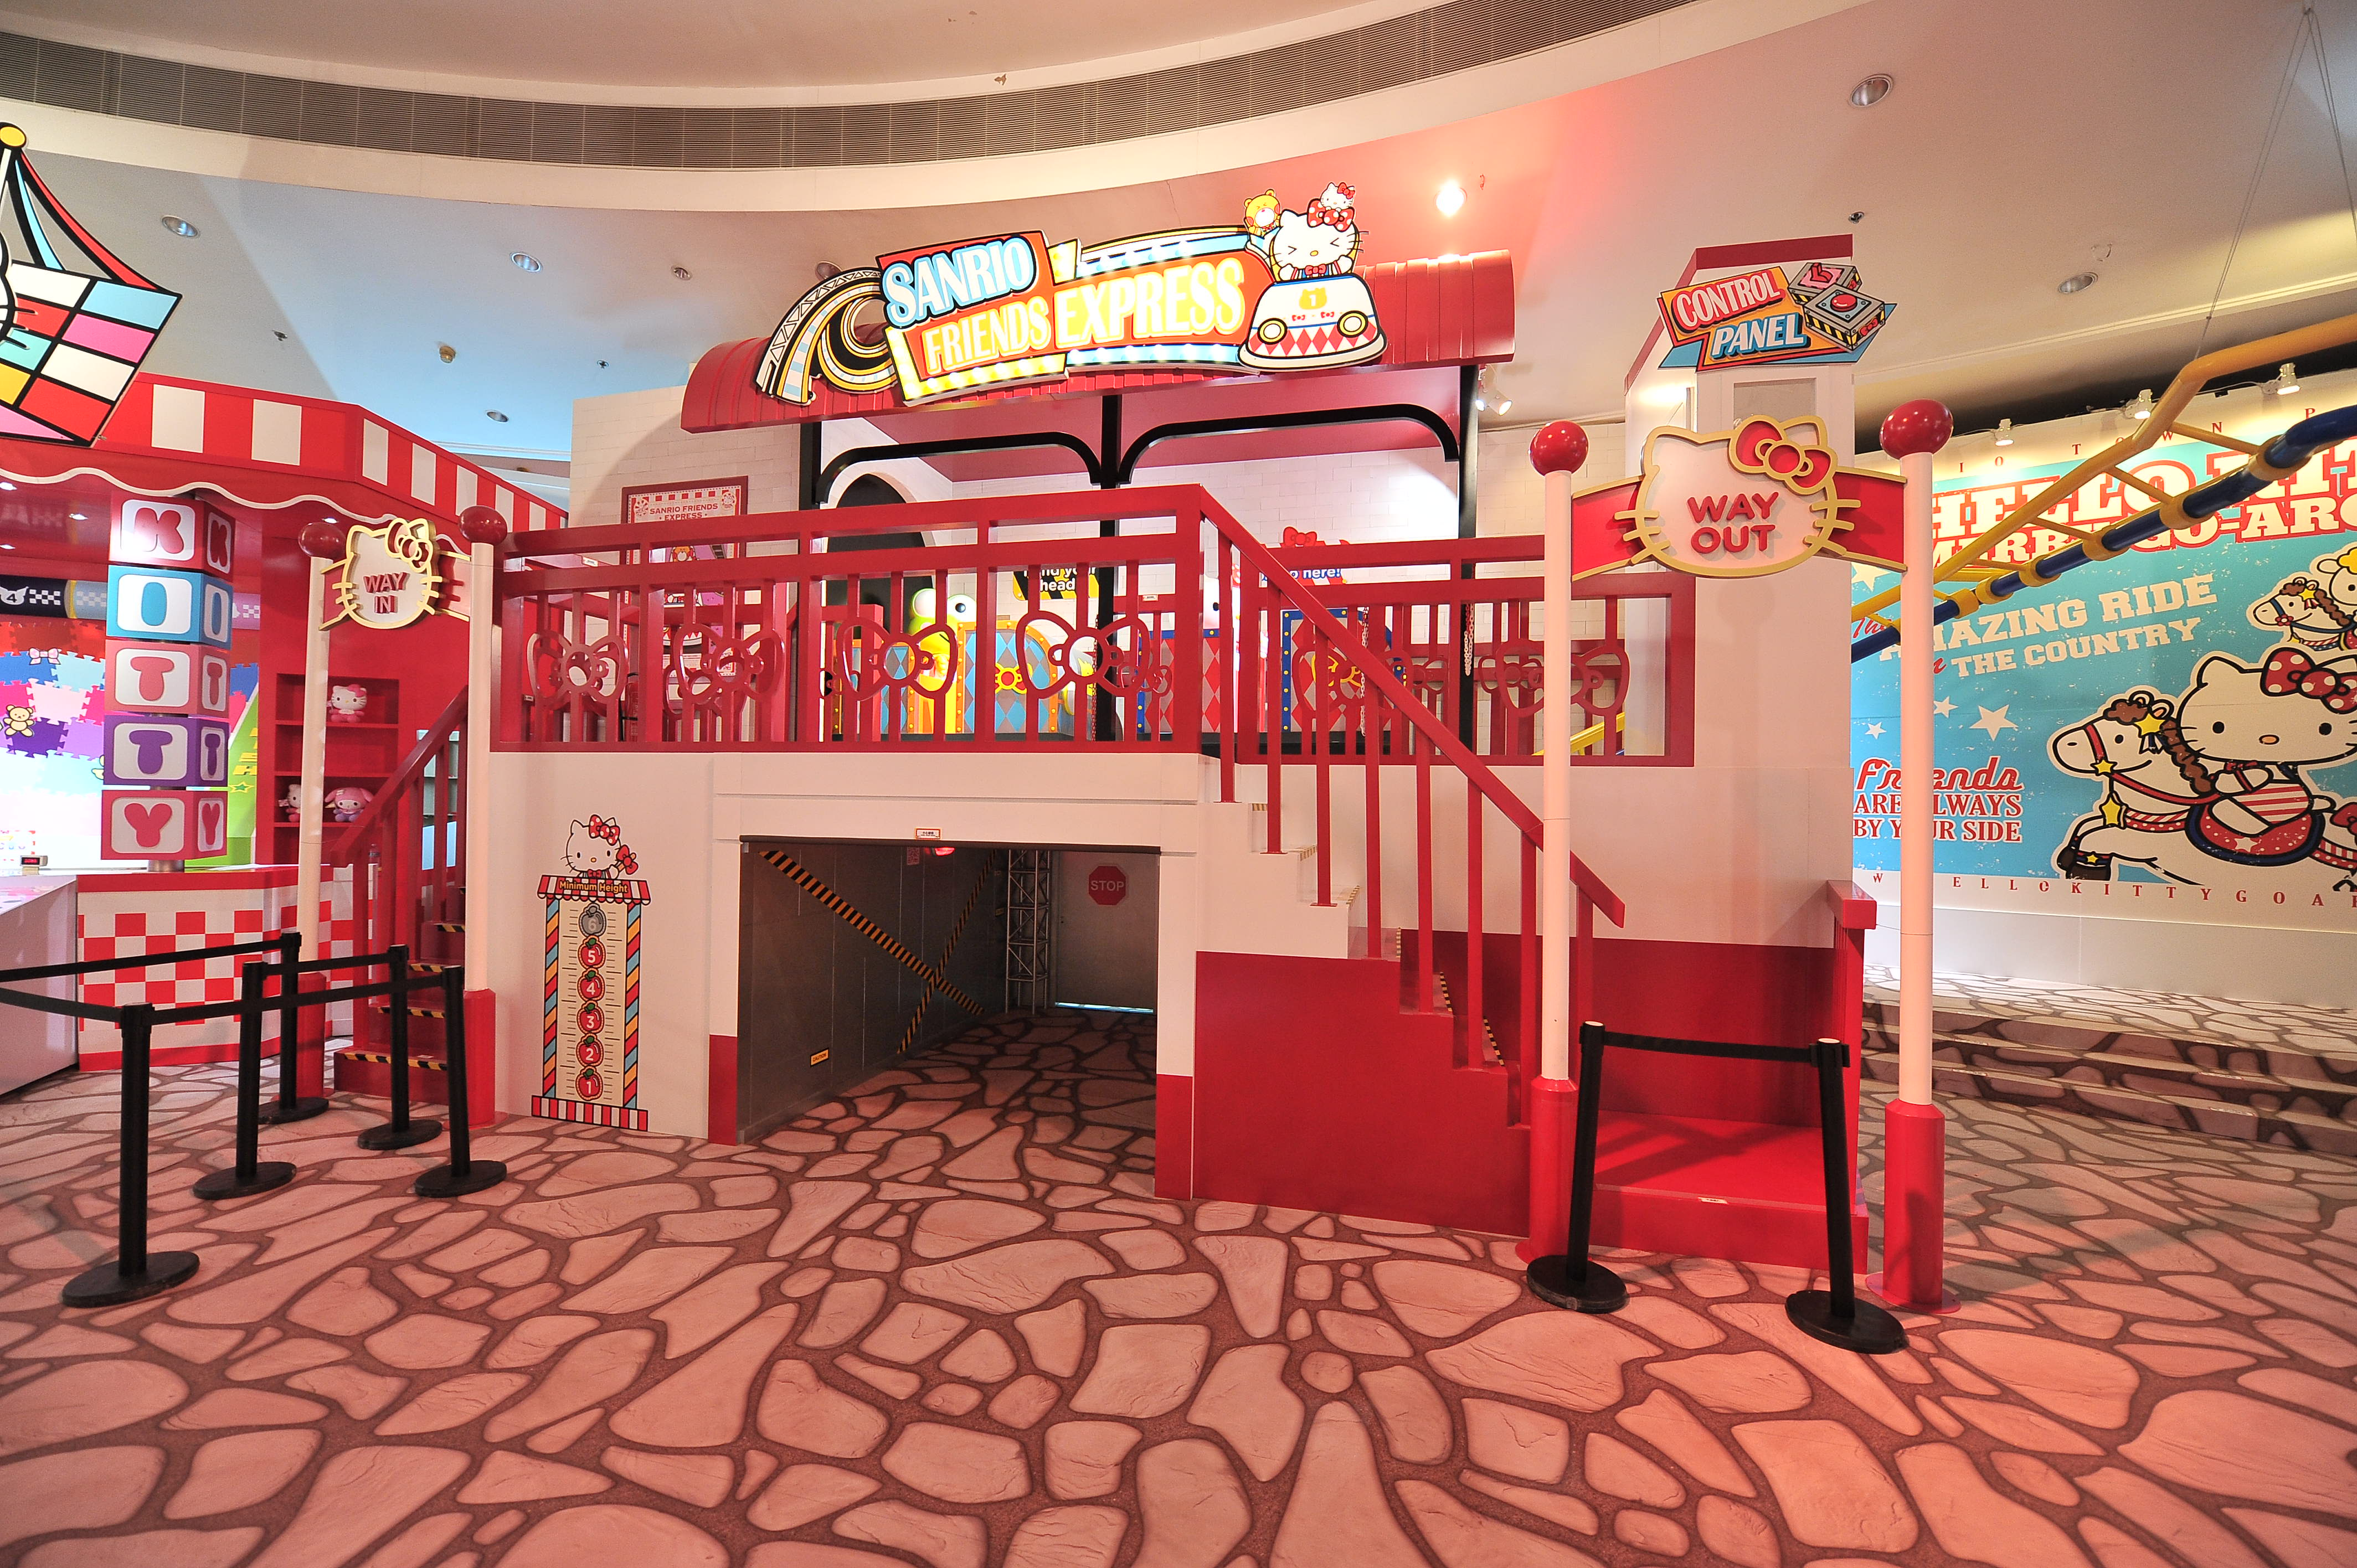 Walk Down Hello Kitty Memory Garden To Admire The Wonderful Collection Of Memorabilia Do You Know That Coin Purse Was VERY